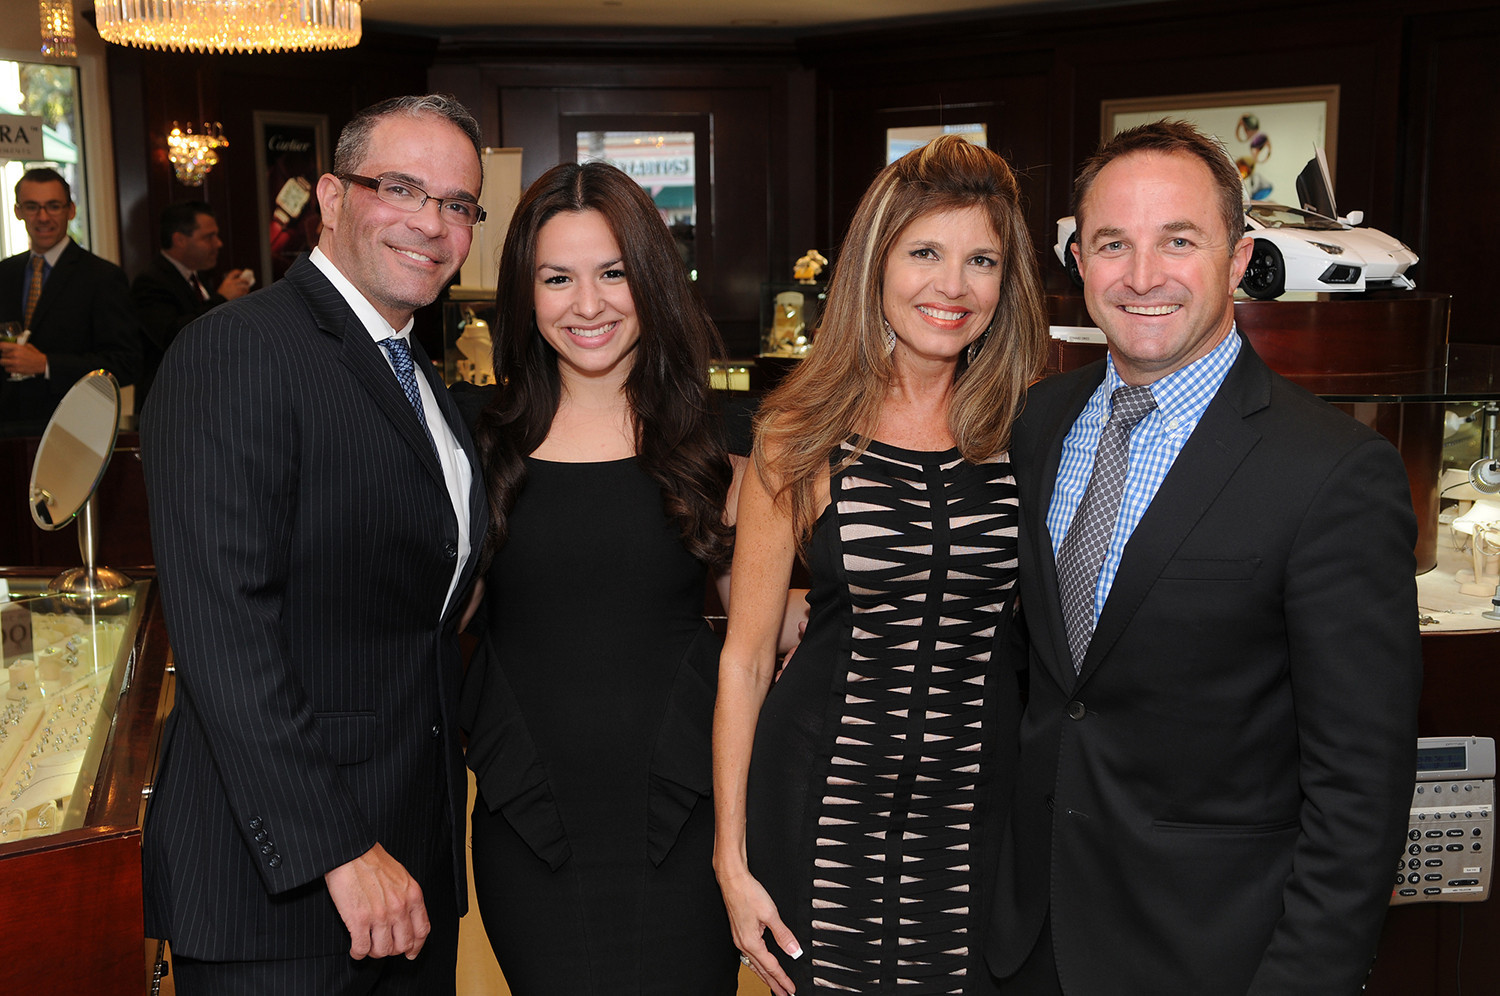 Society Scene photos - Raciel Badell, Beverly Valladar and Jacquie Sullivan from Weston Jewelers with Greg Weeter from Bulgari